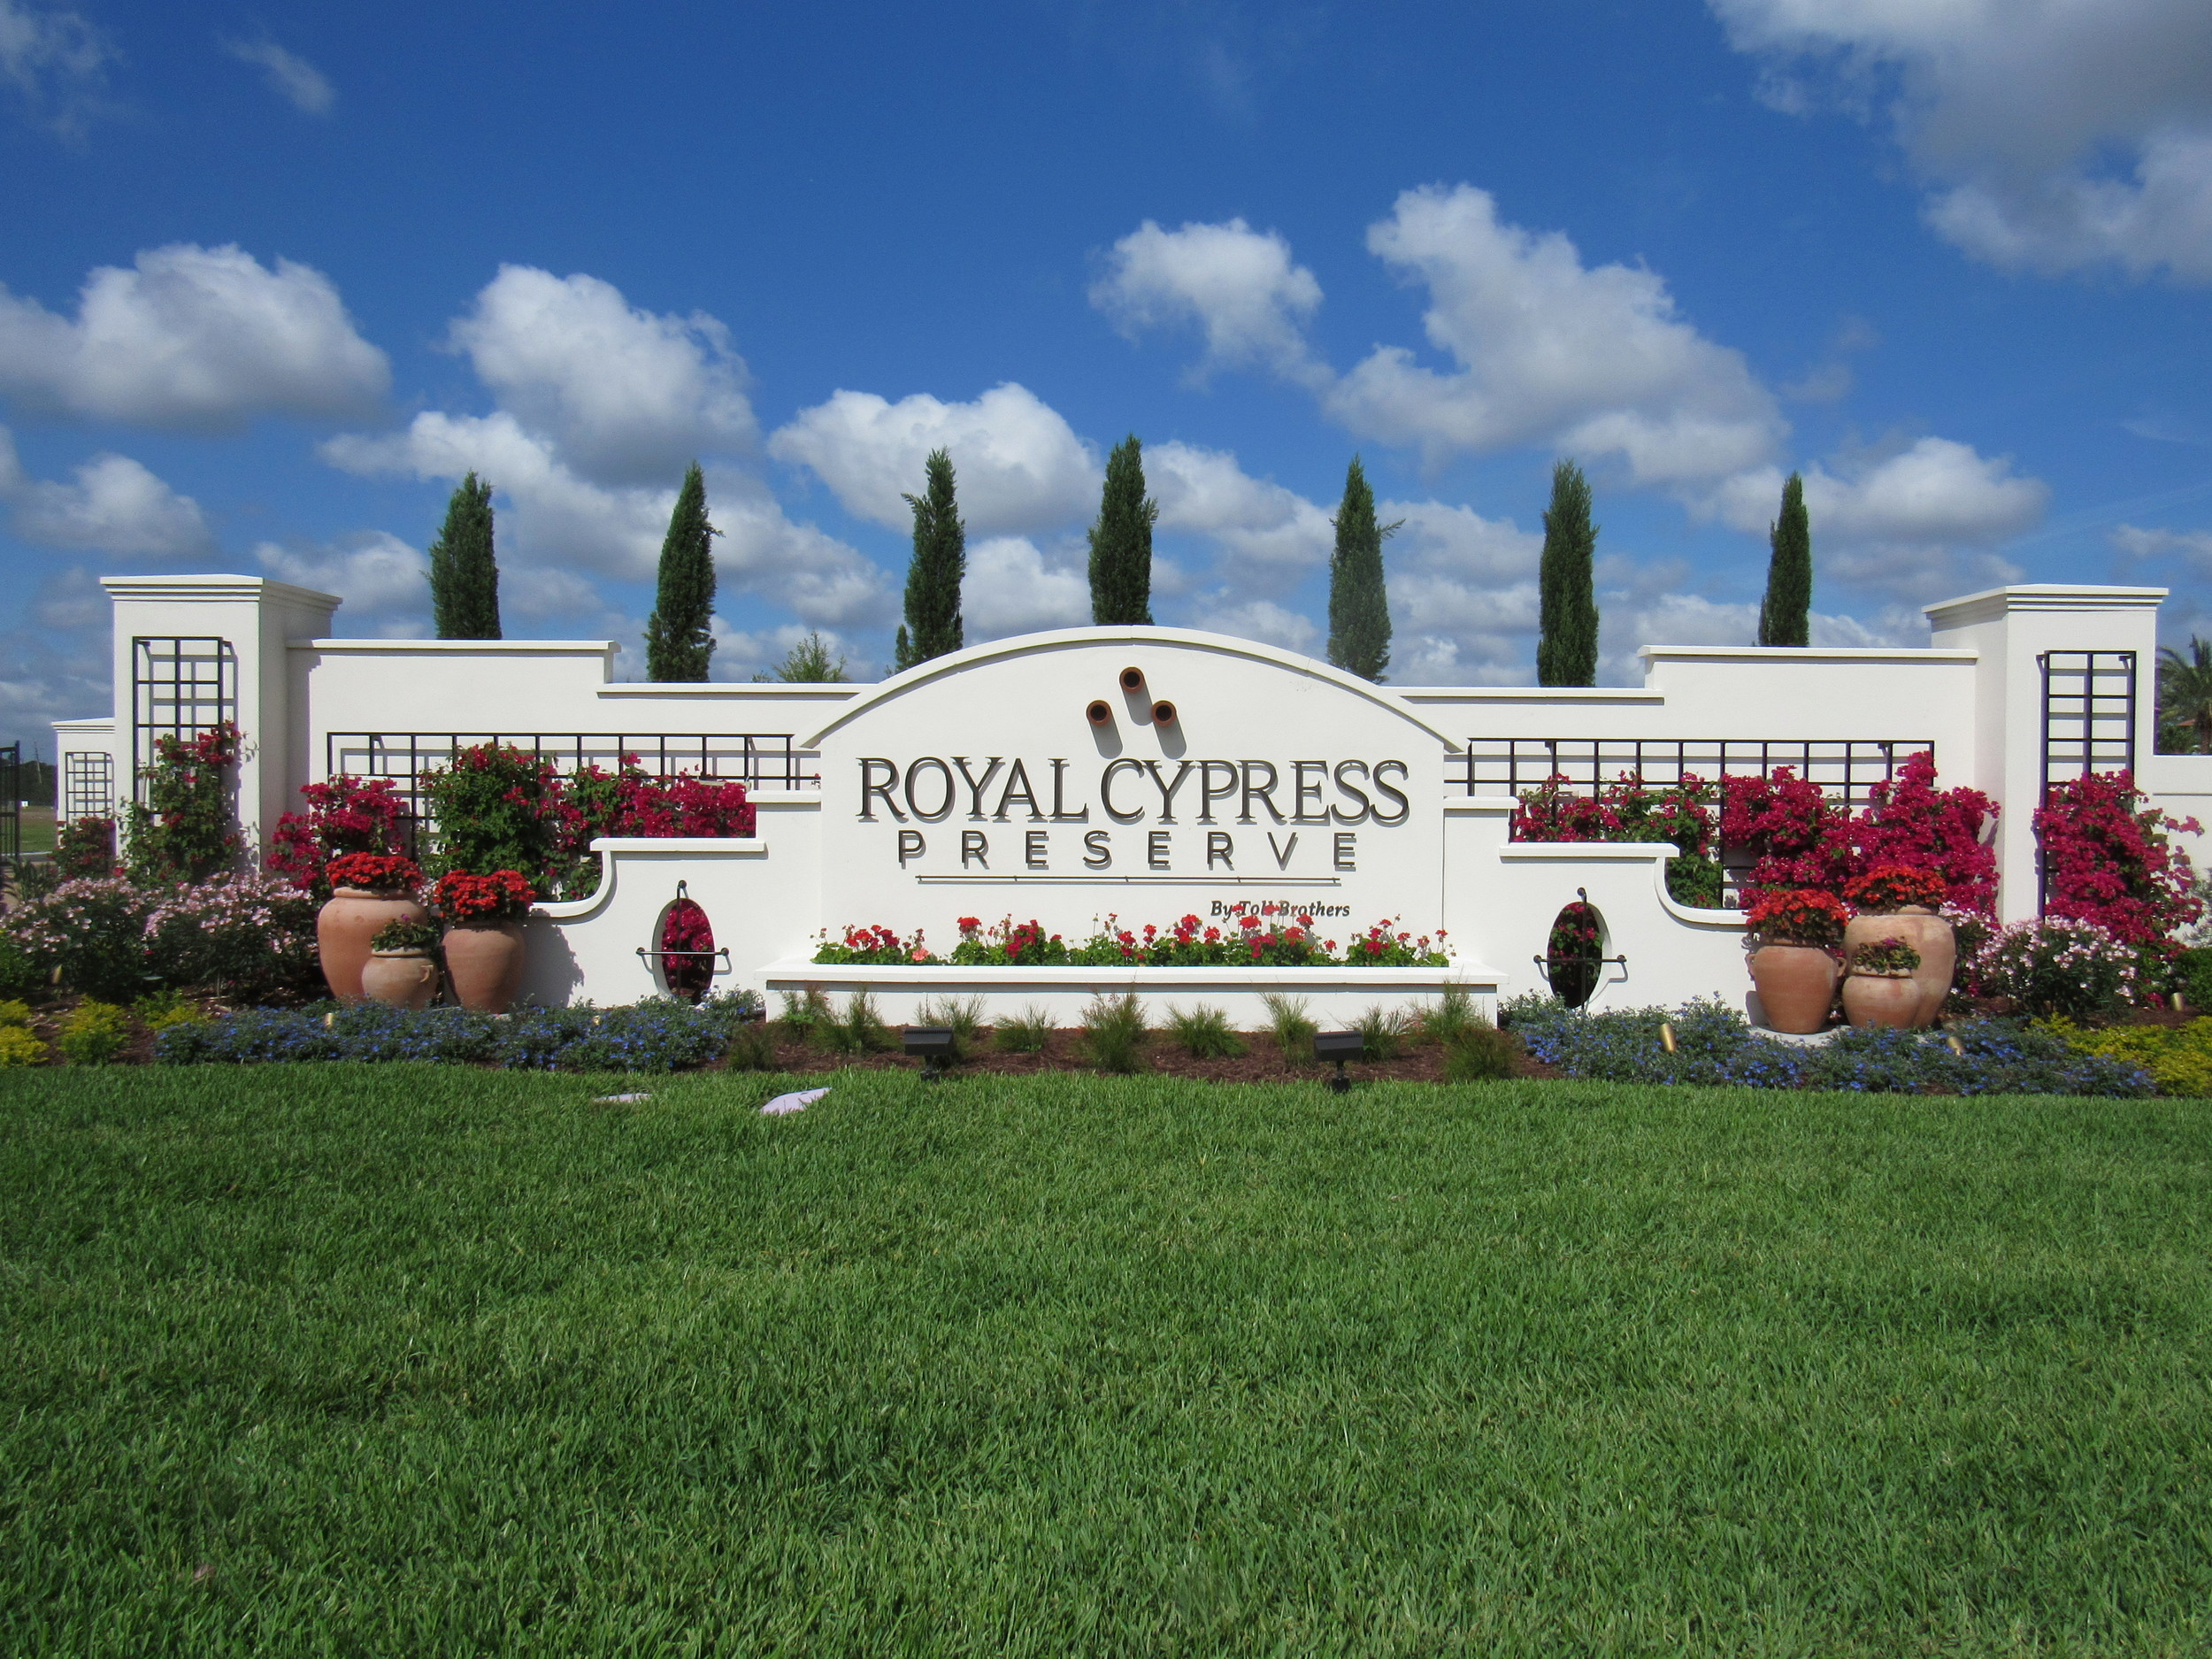 Royal Cypress Preserve Daly Design Group